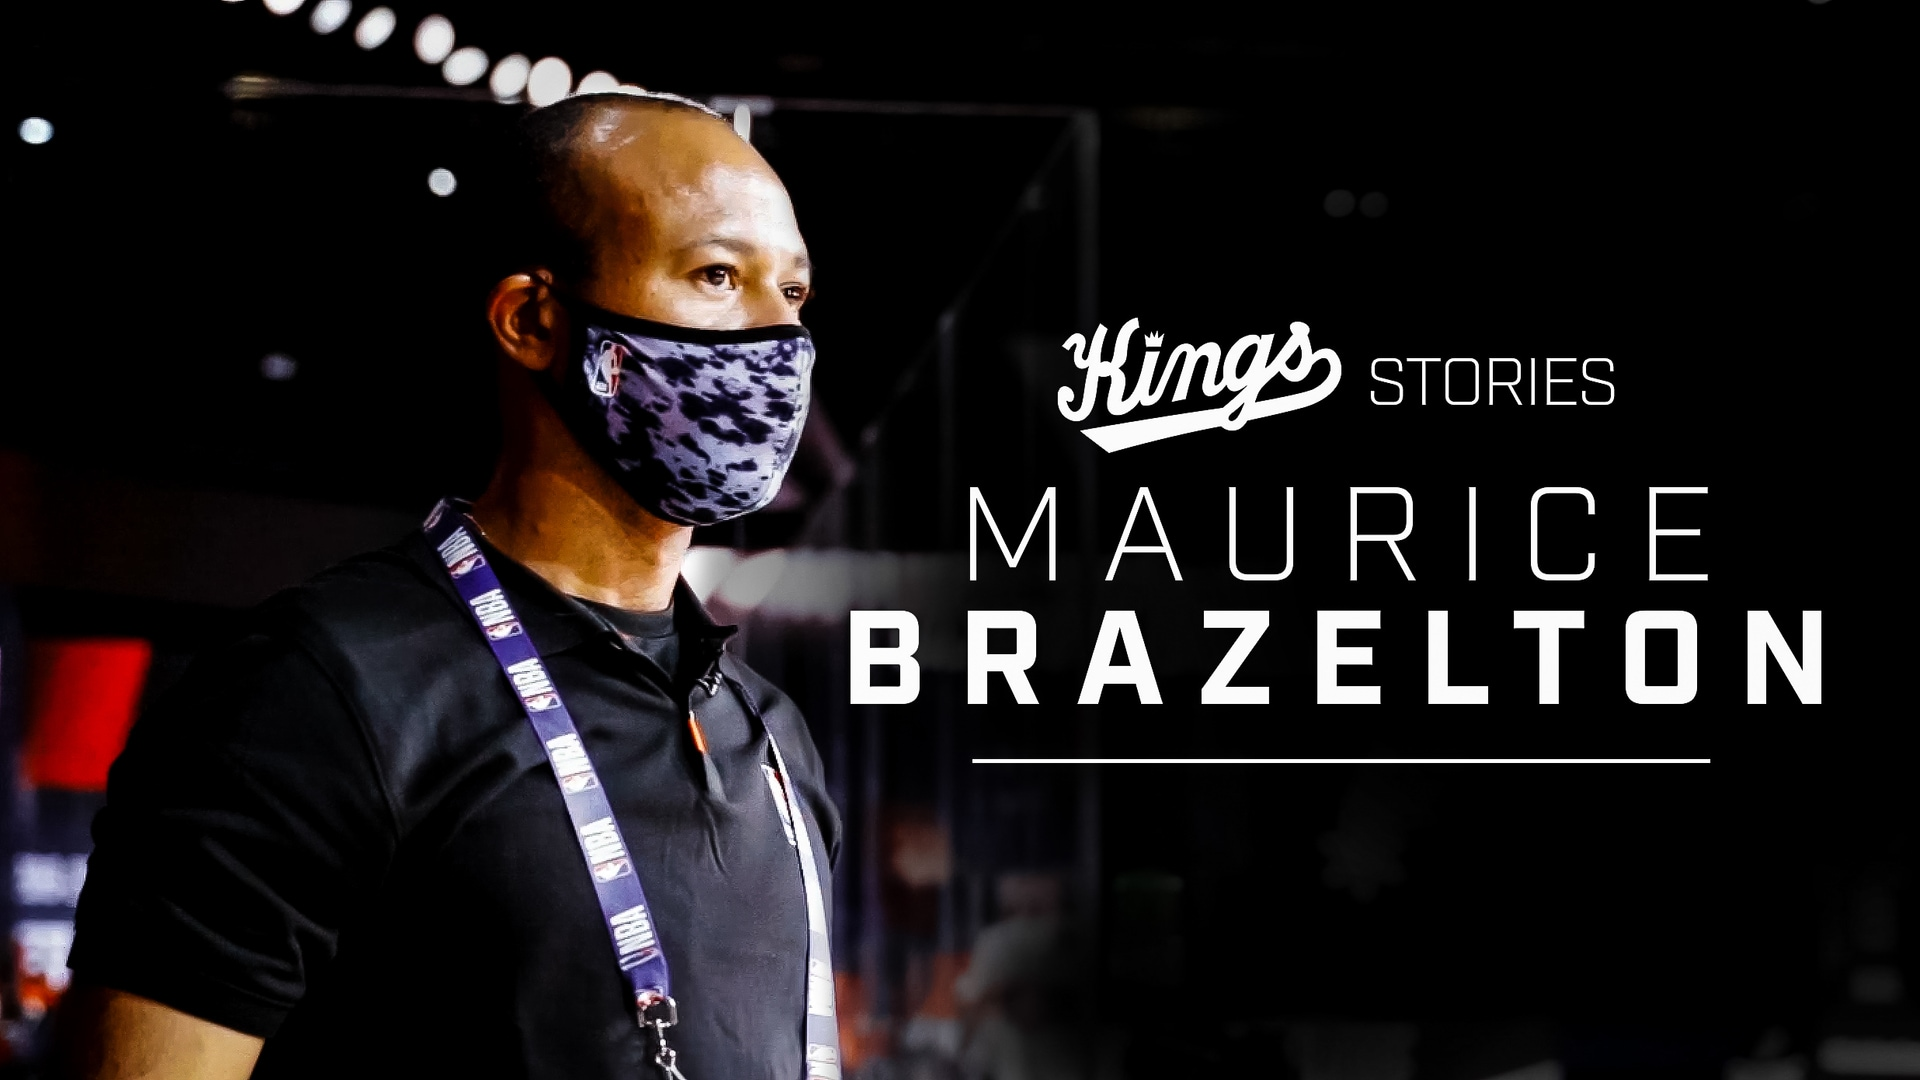 'The NBA realized [Mo Brazelton] is one of the best we have' | Kings Stories: Orlando